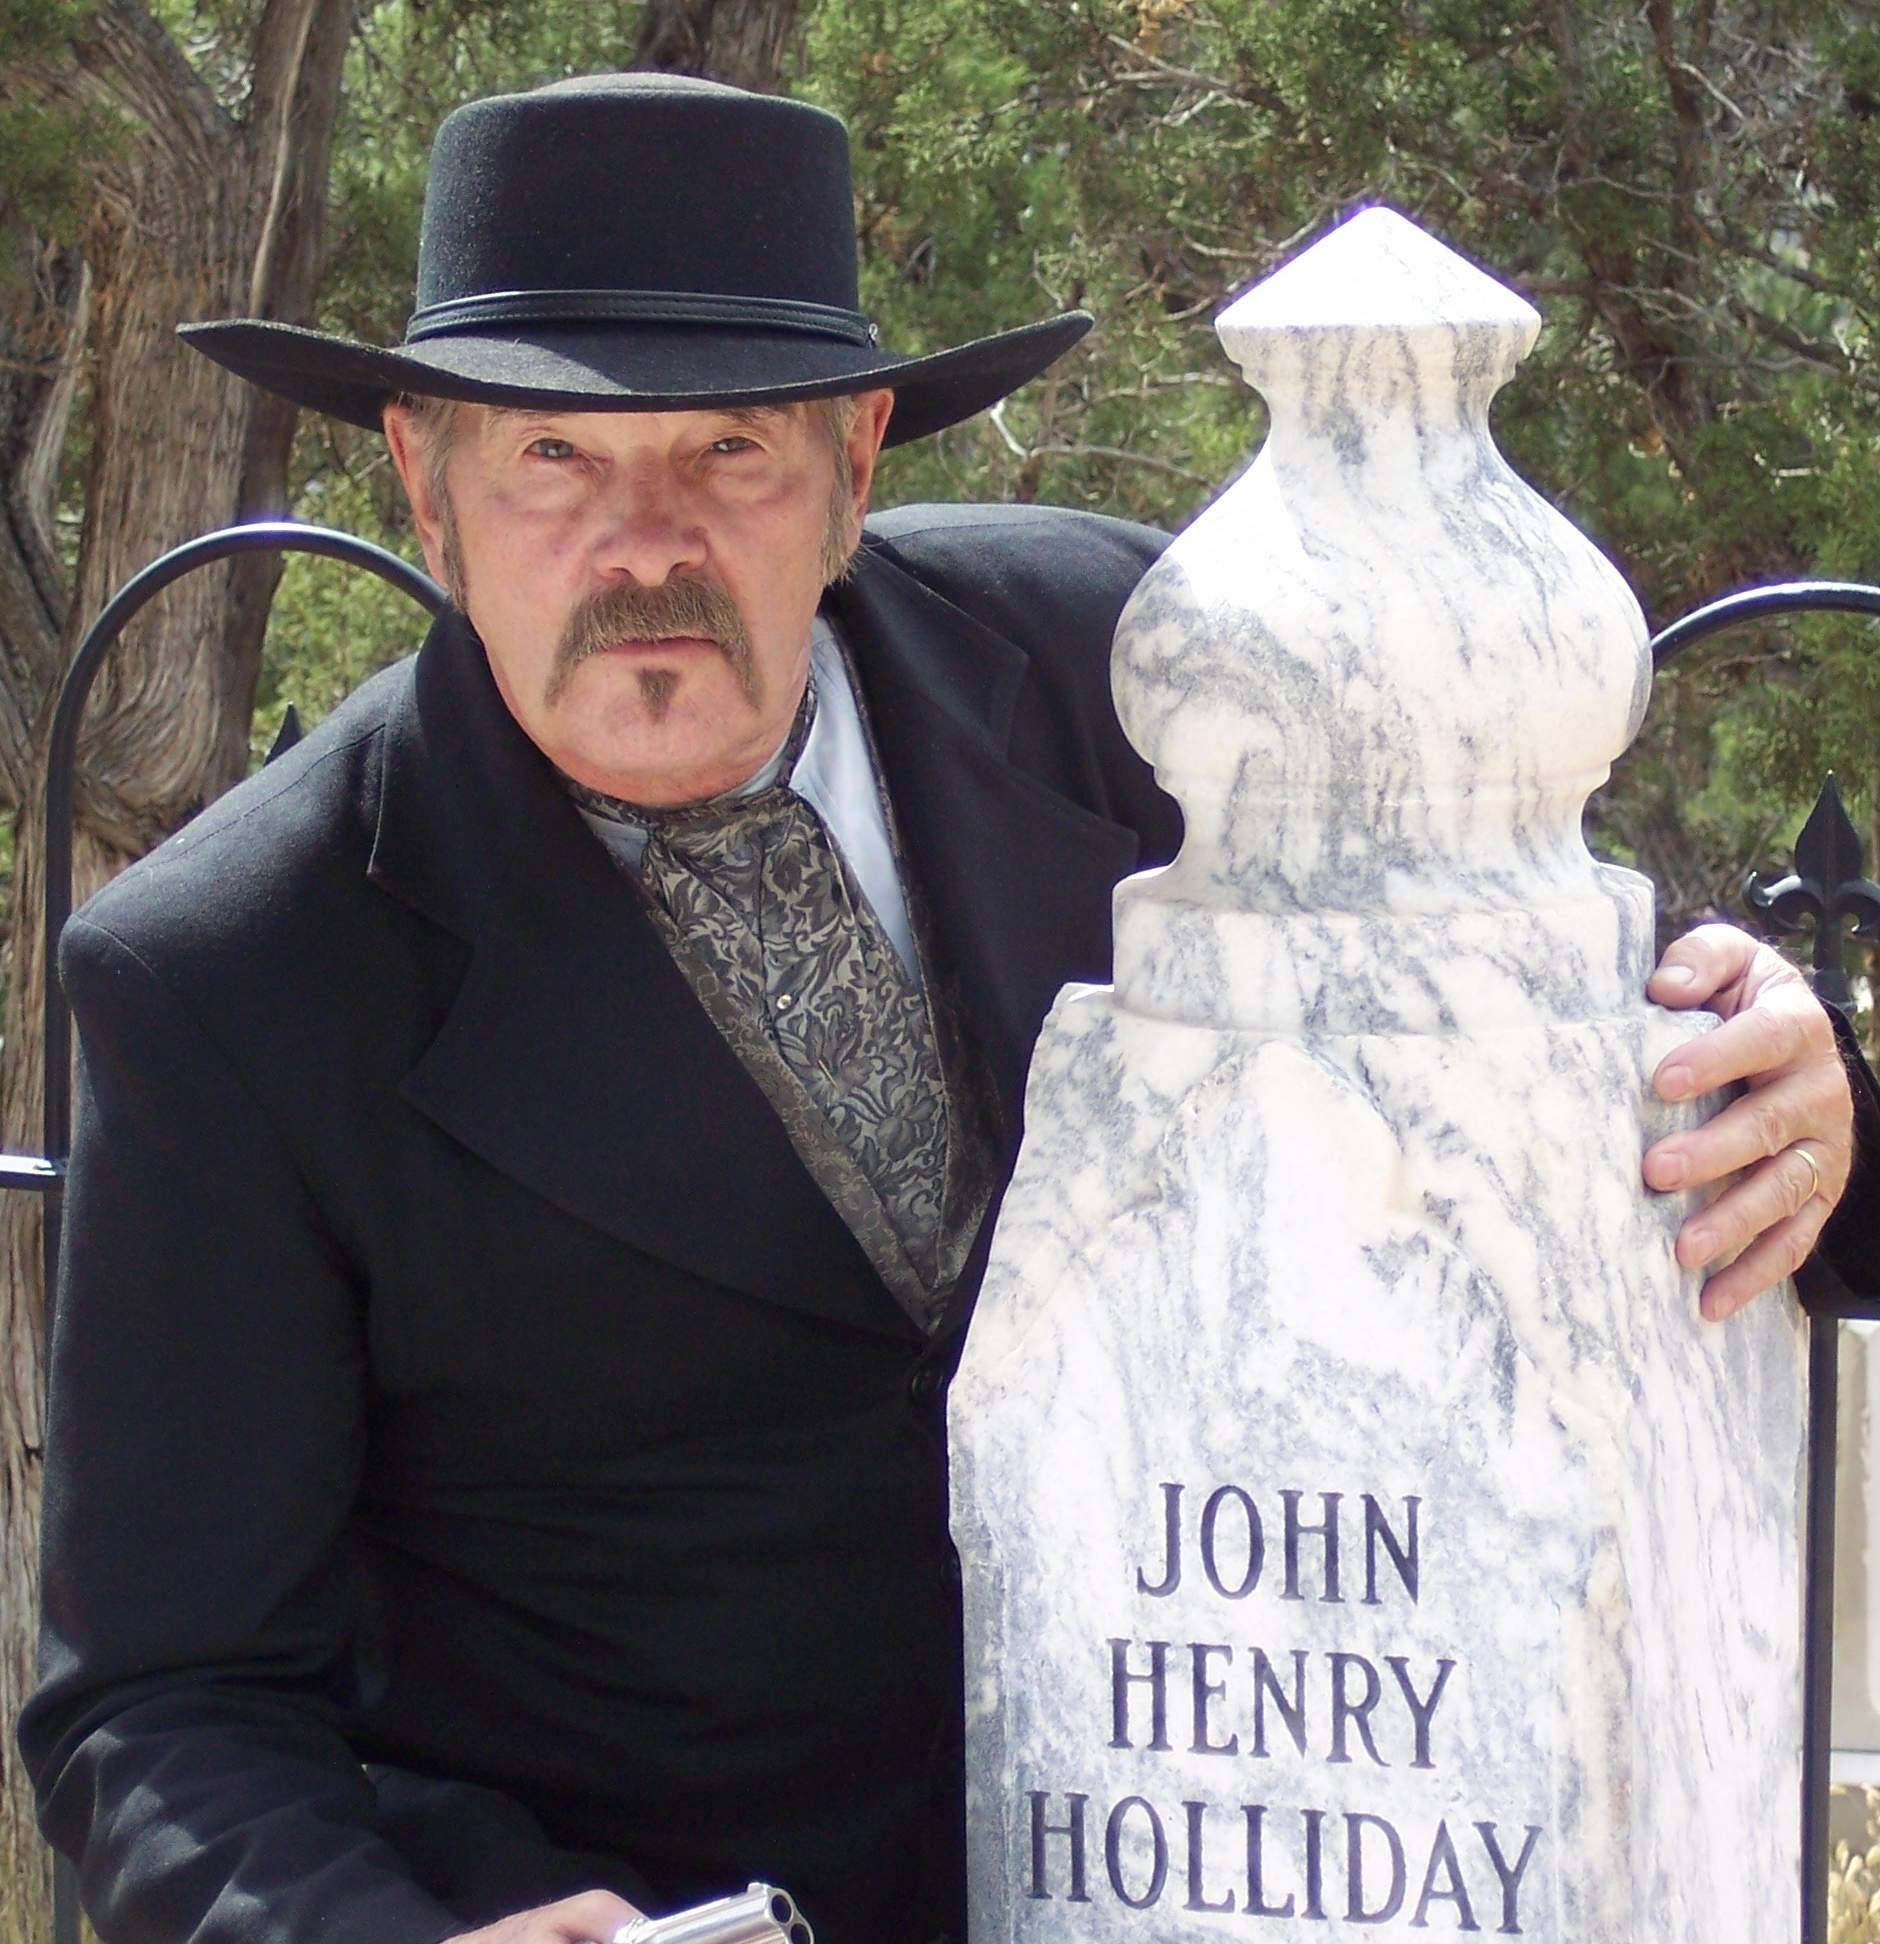 Image of an actor at Image of the entrance to the Glenwood Springs Historical Society and Frontier Museum's ghost walk in Colorado